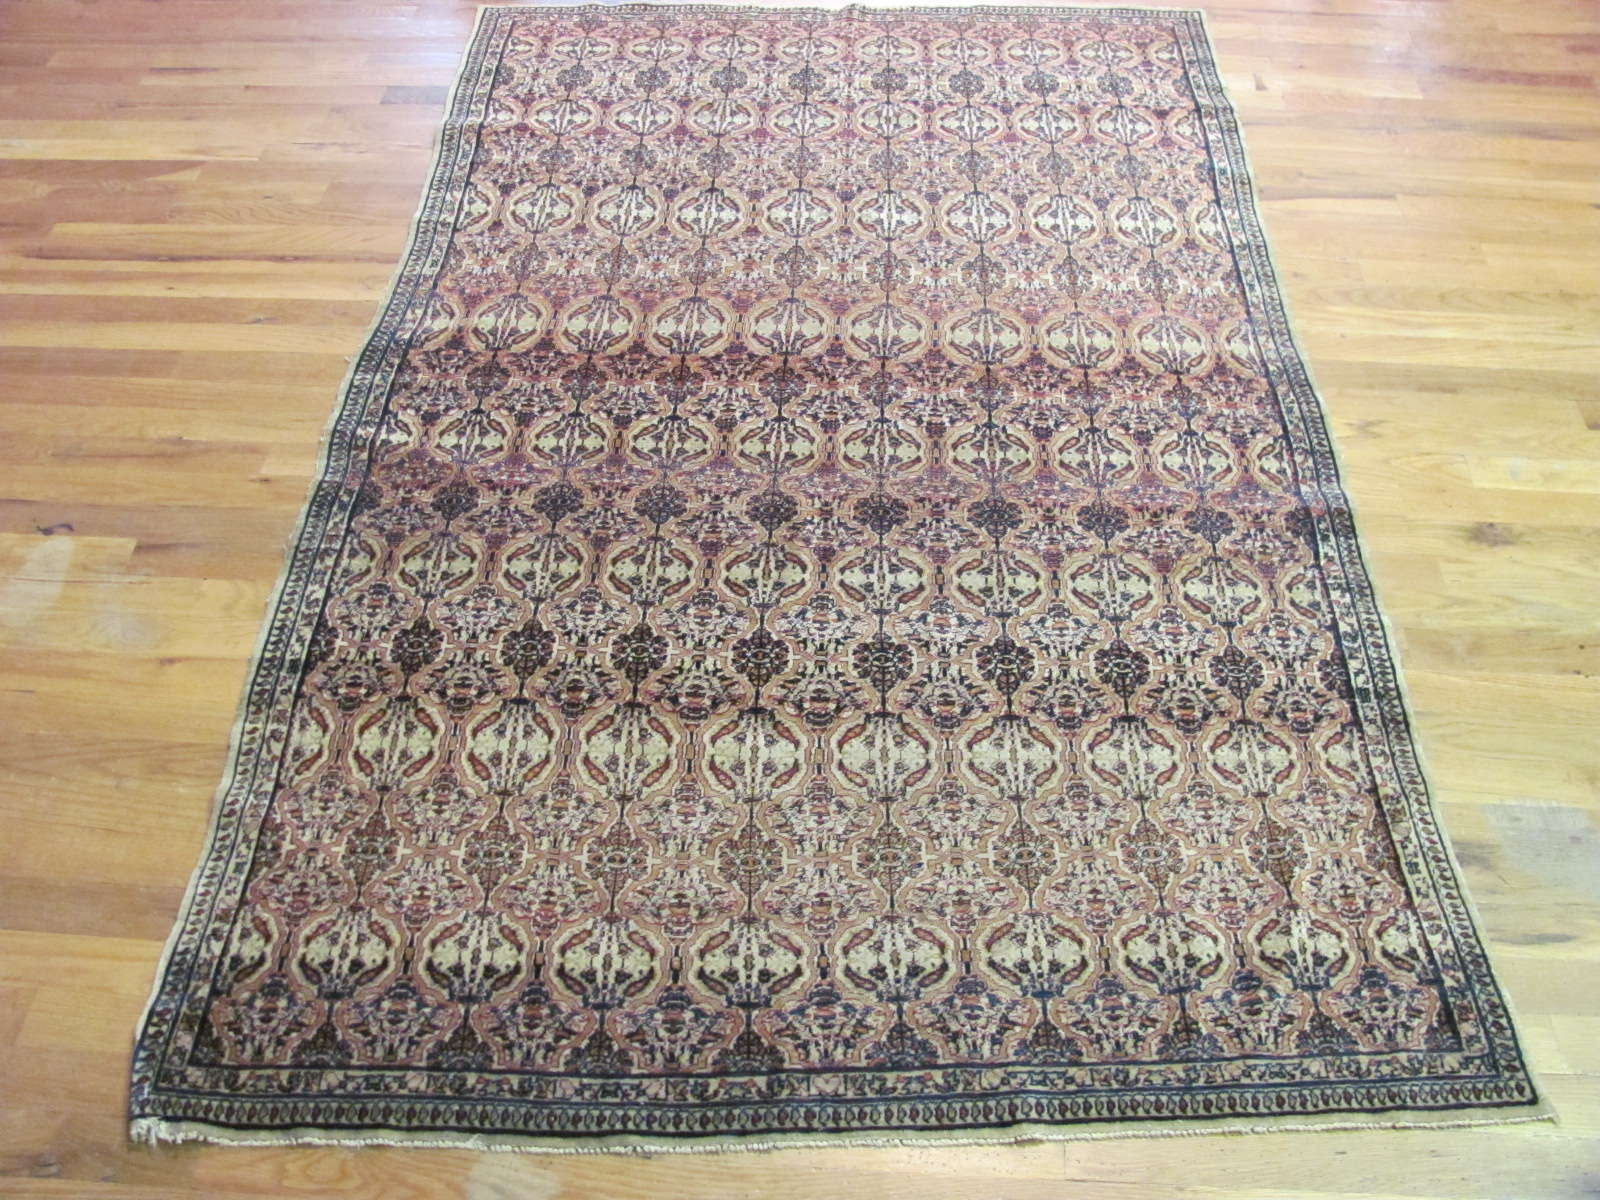 Antique Kerman Lavar Rug | Persia | Circa 1890